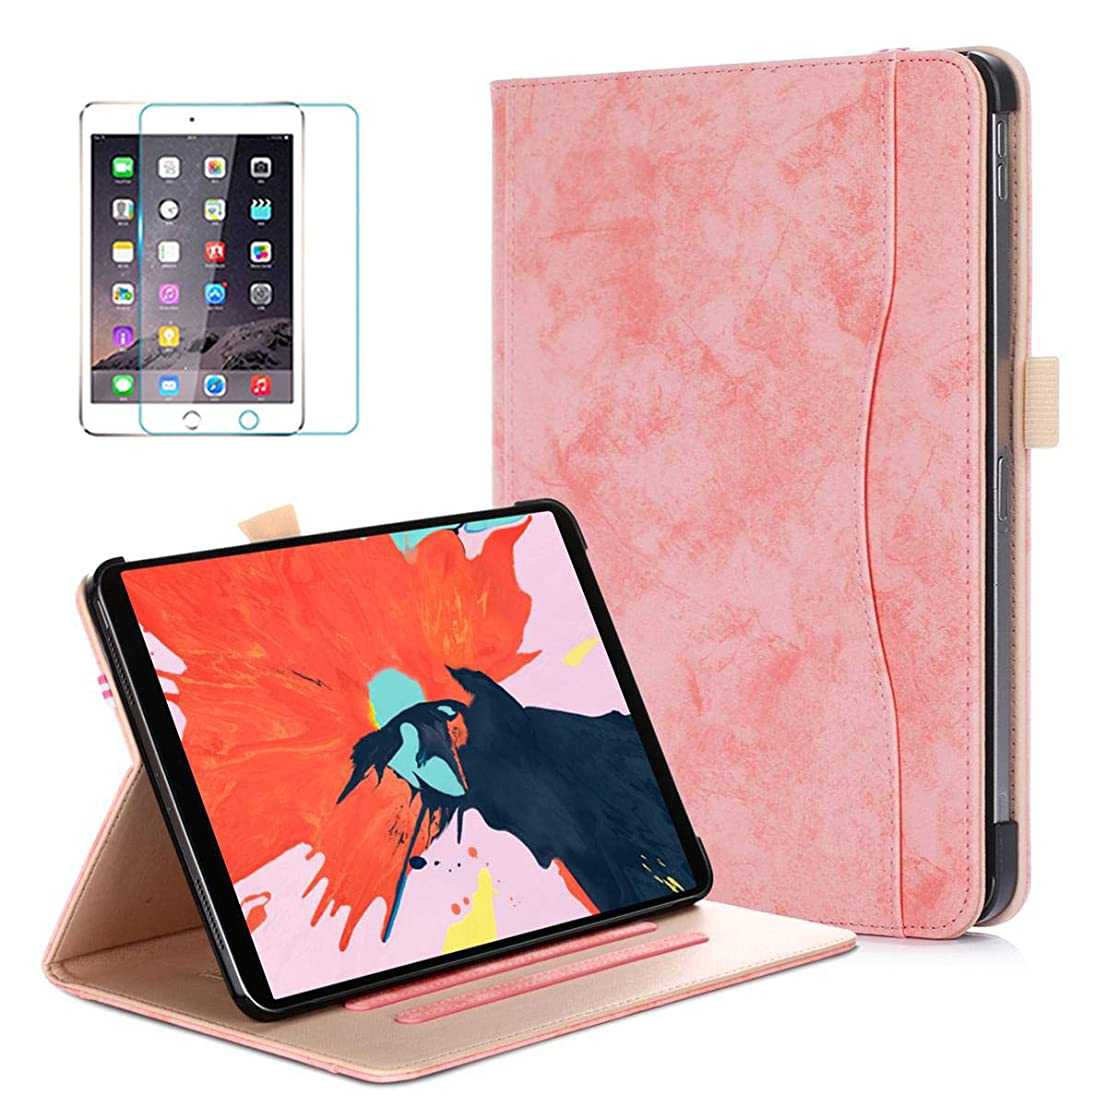 Soweiek iPad Pro 11 inch 2018 Case, Premium Leather Protective Stand Smart Cover Auto Wake/Sleep with Pencil Holder and Screen Protector, Pink